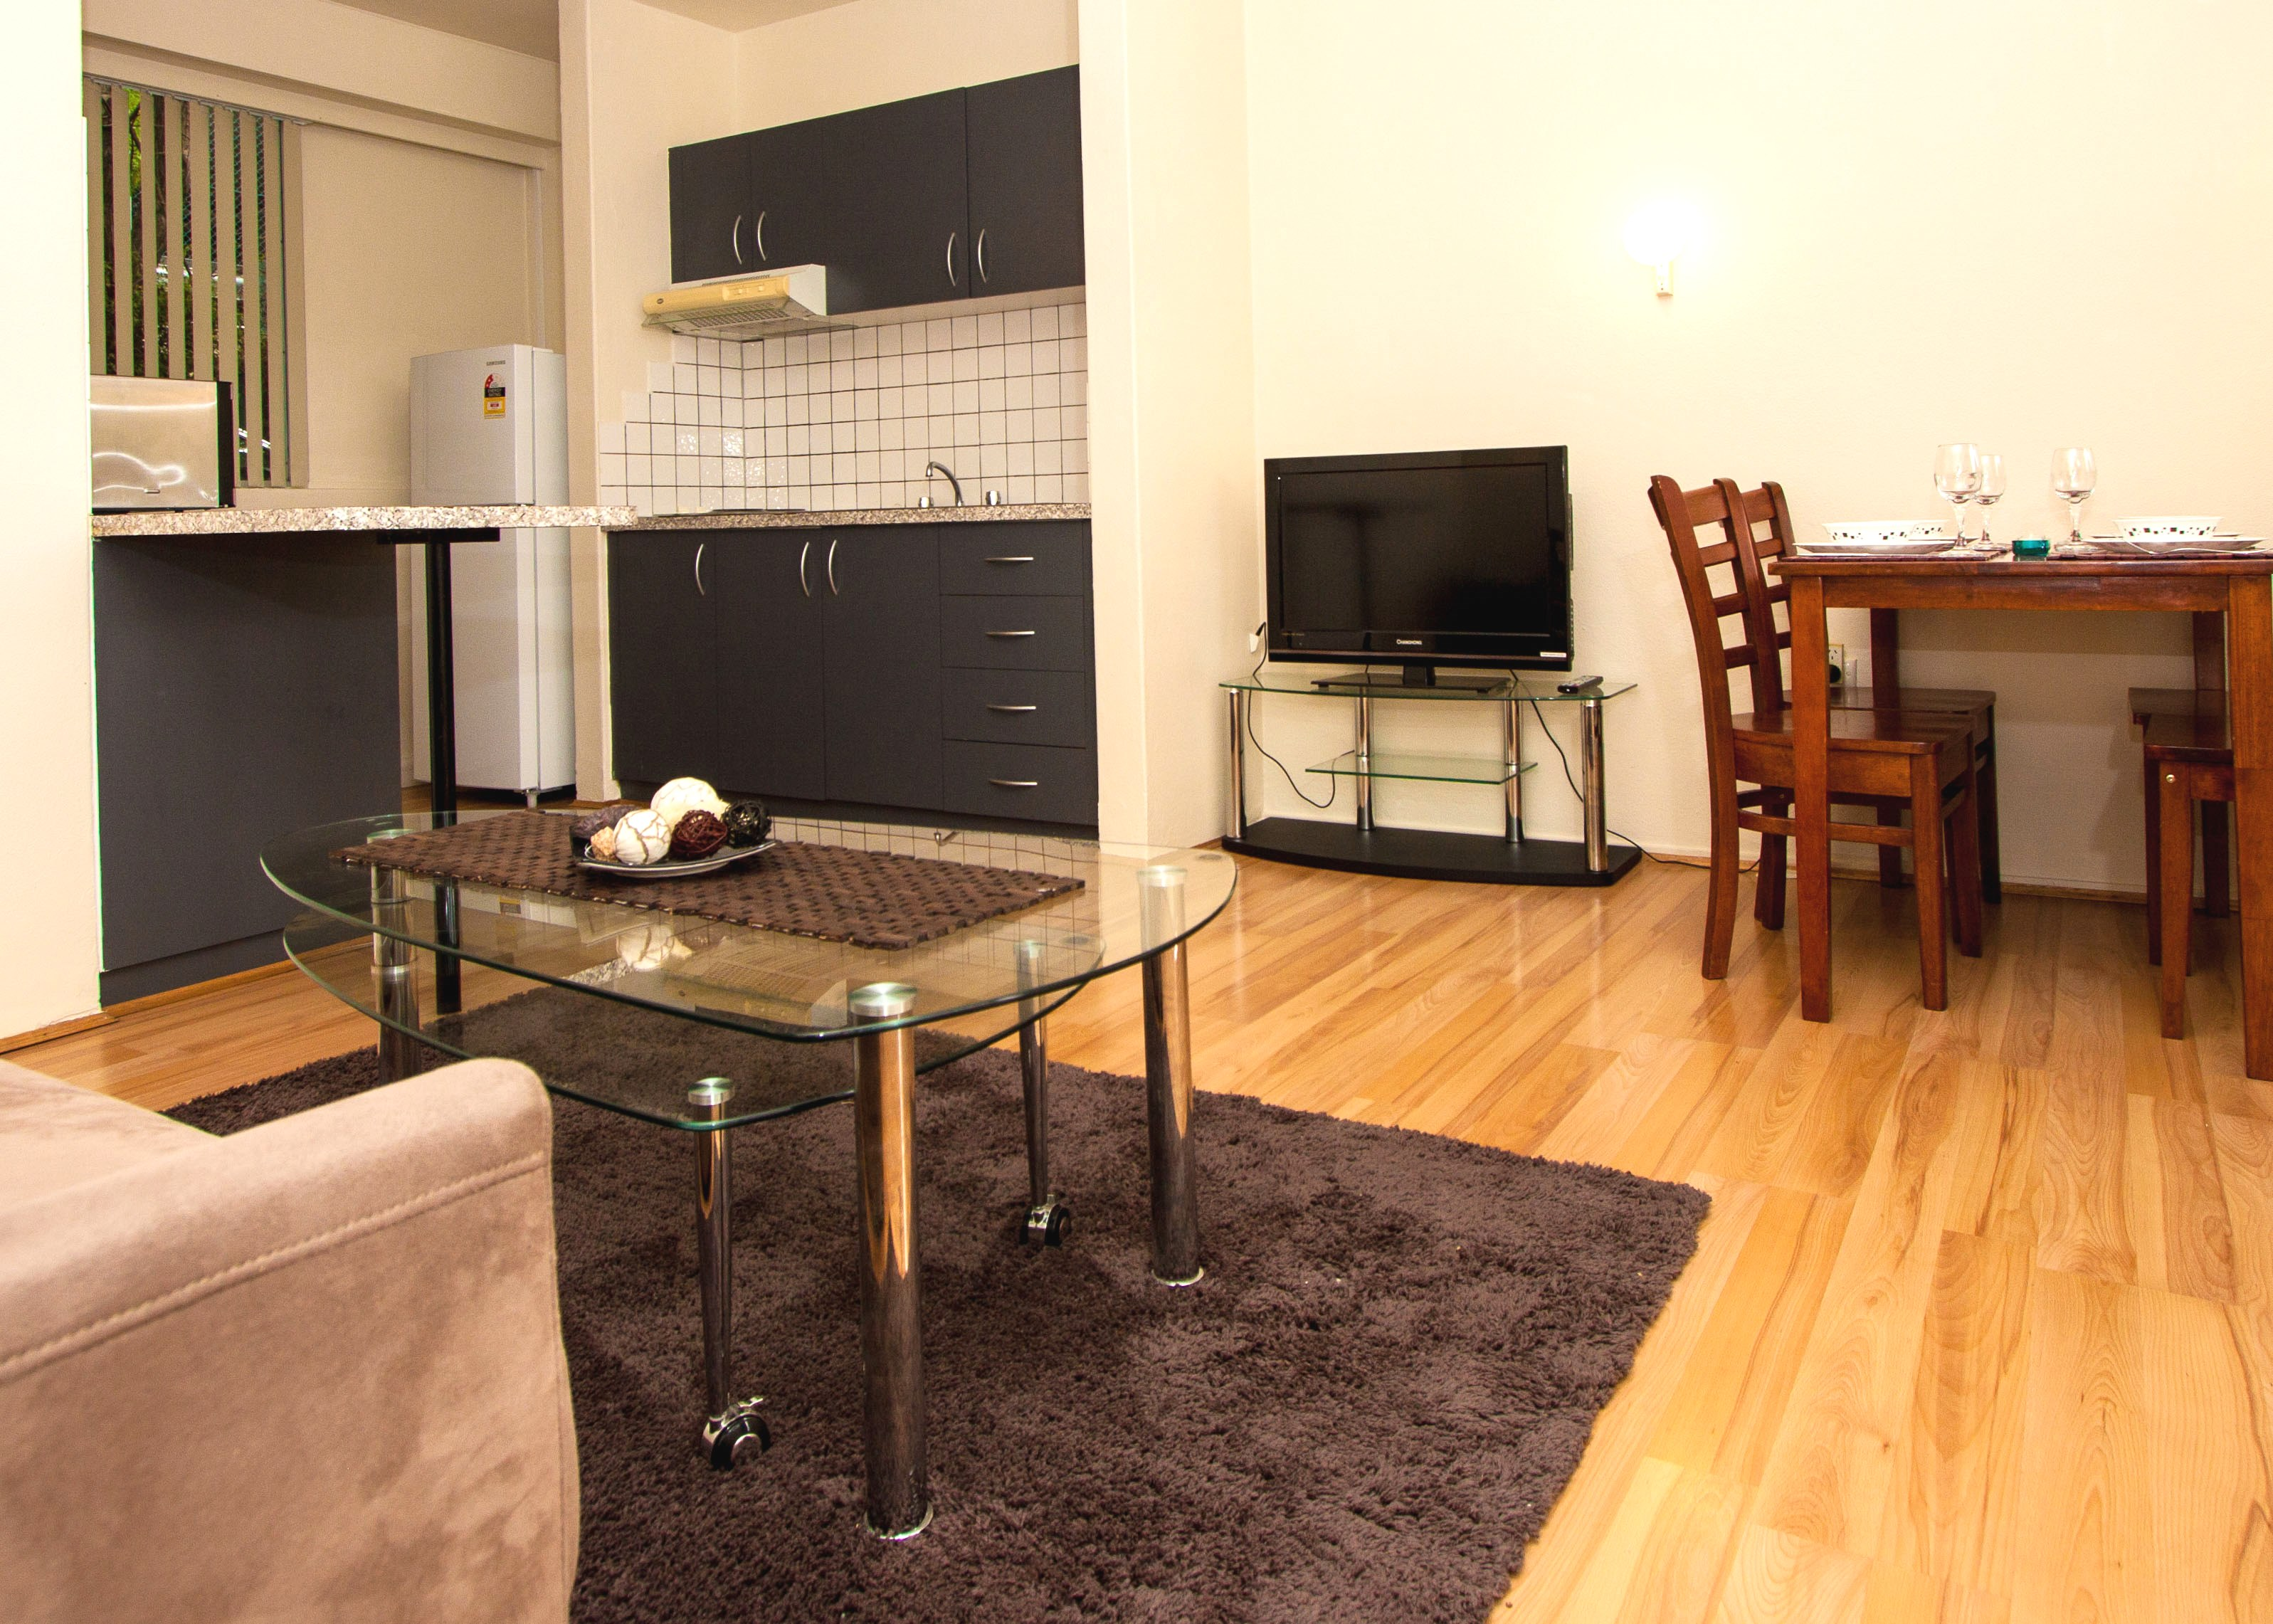 canberra short term holiday accommodation ACT rental unit serviced apartment